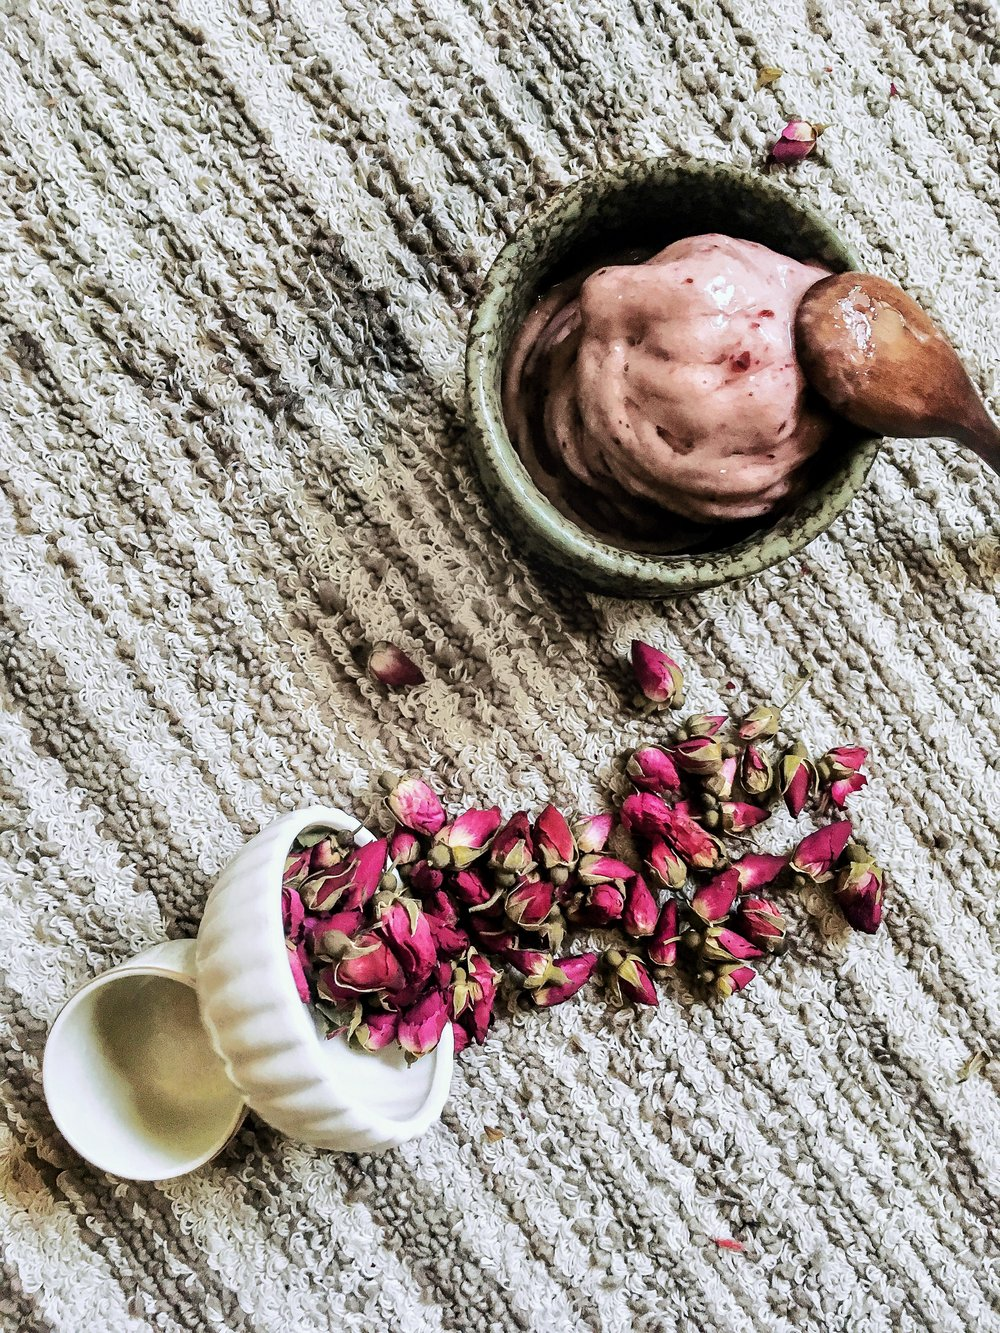 Cherry & Rose Tea Affogato